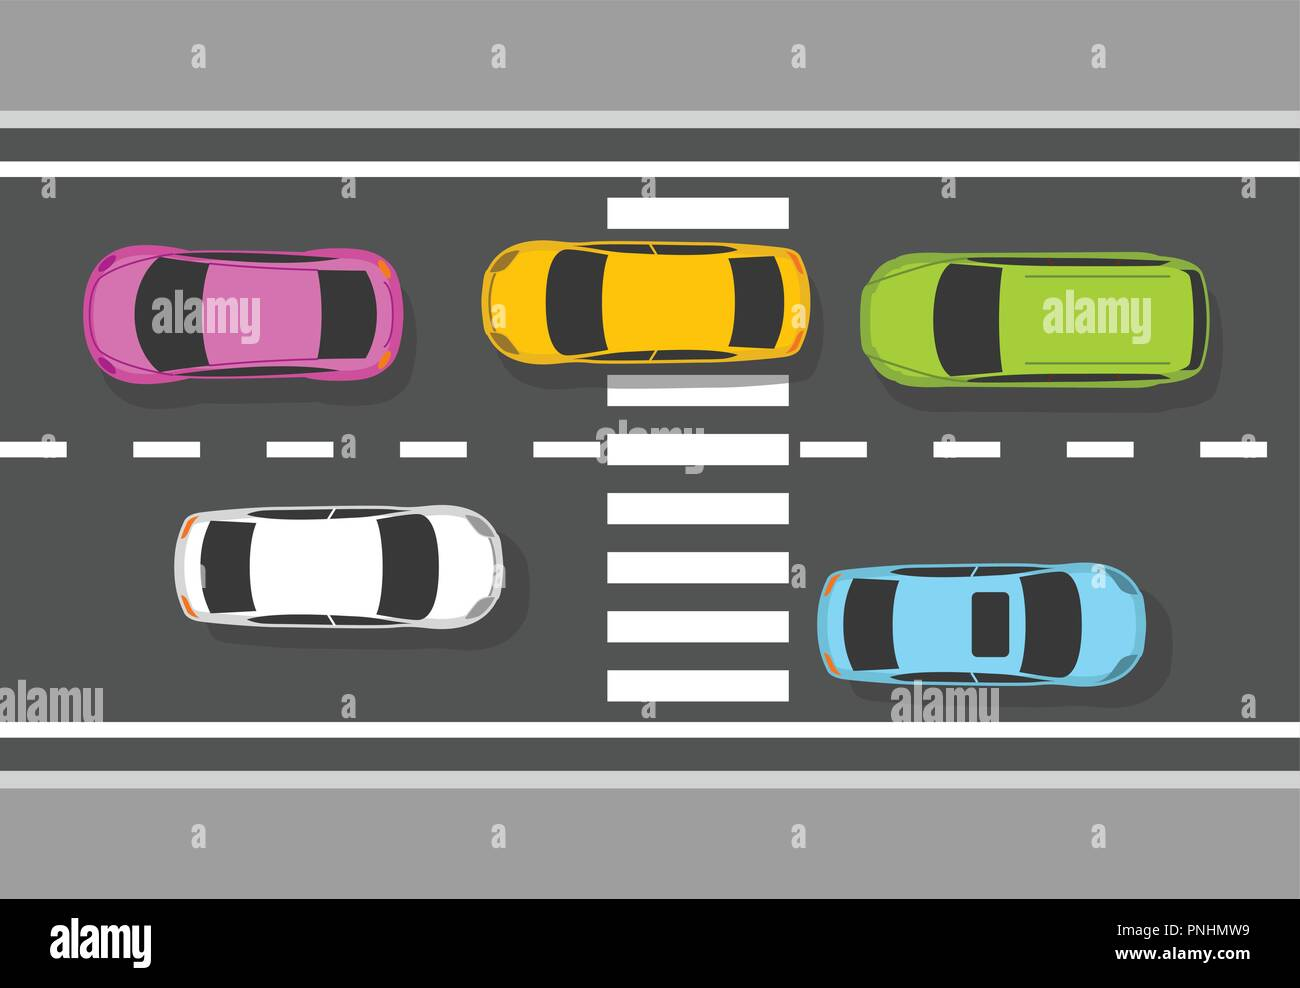 Top view of cars on road - traffic on highway, view from above - Stock Image